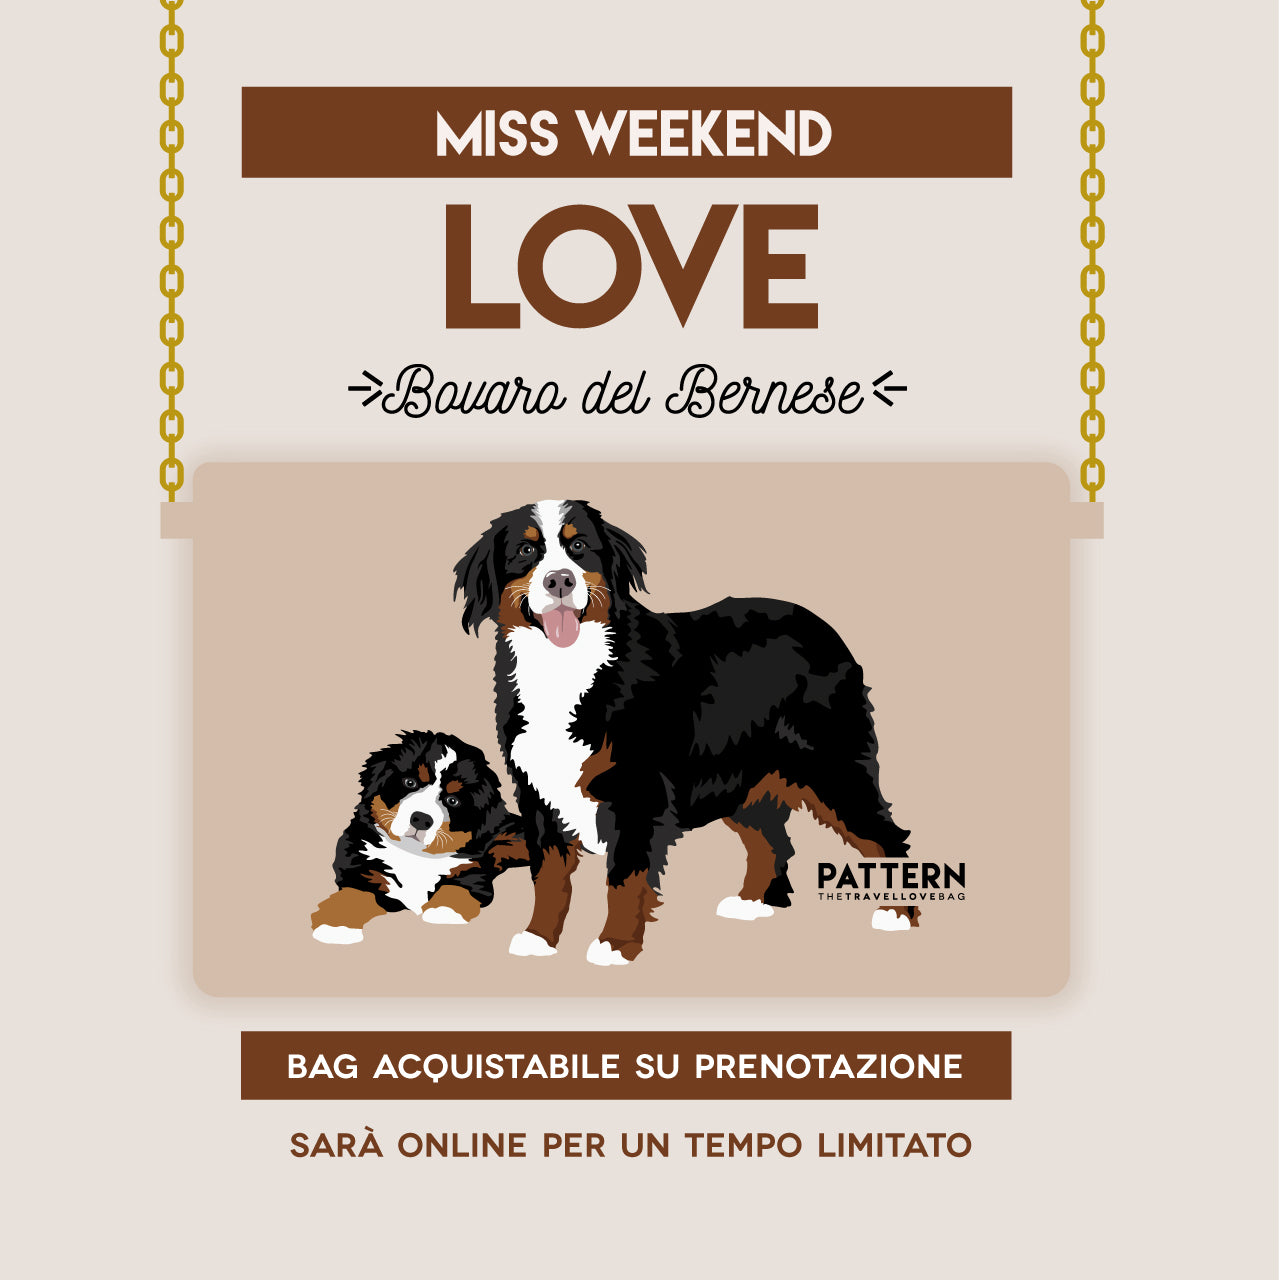 MISS WEEKEND BOVARO DEL BERNESE